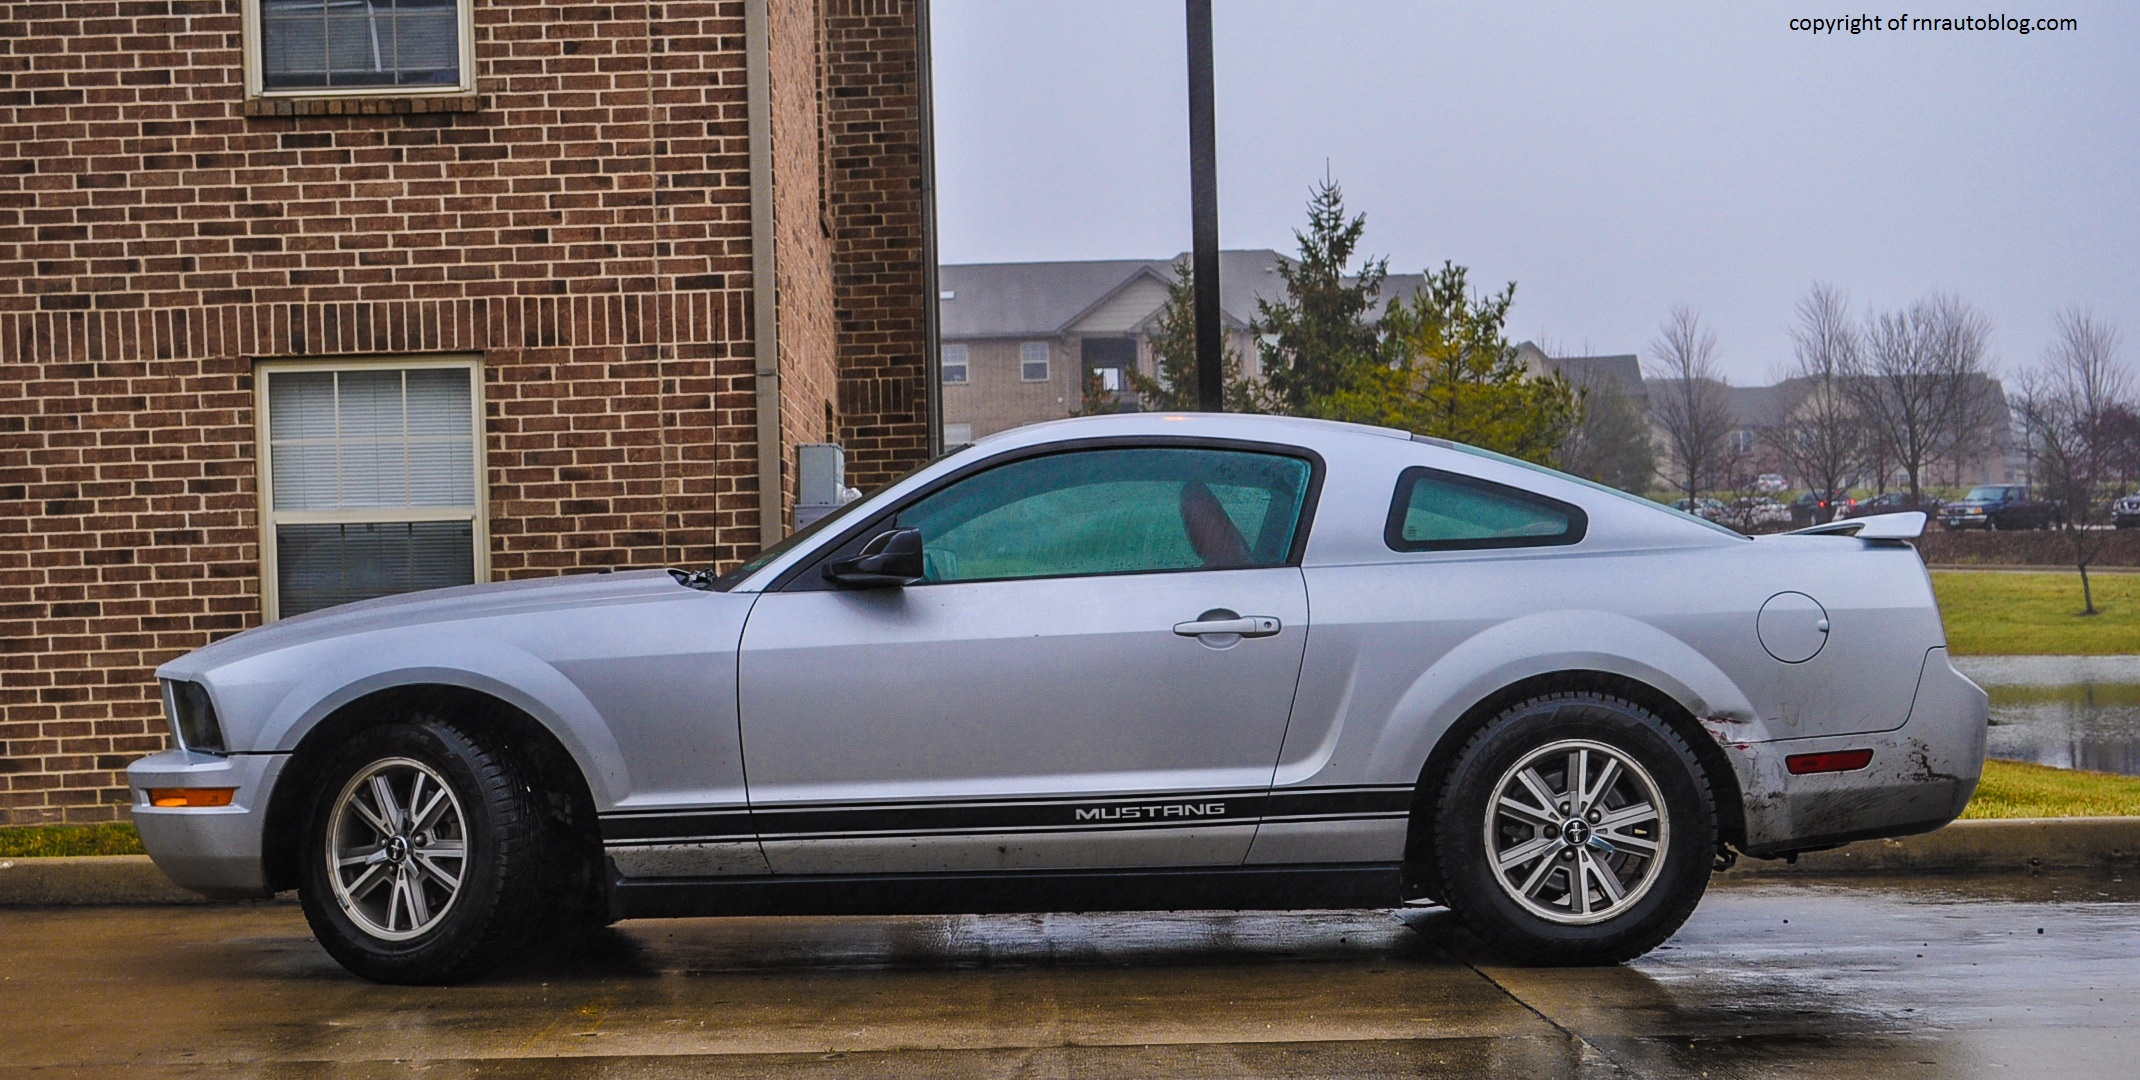 2005 Ford Mustang V6 Premium Review | RNR Automotive Blog